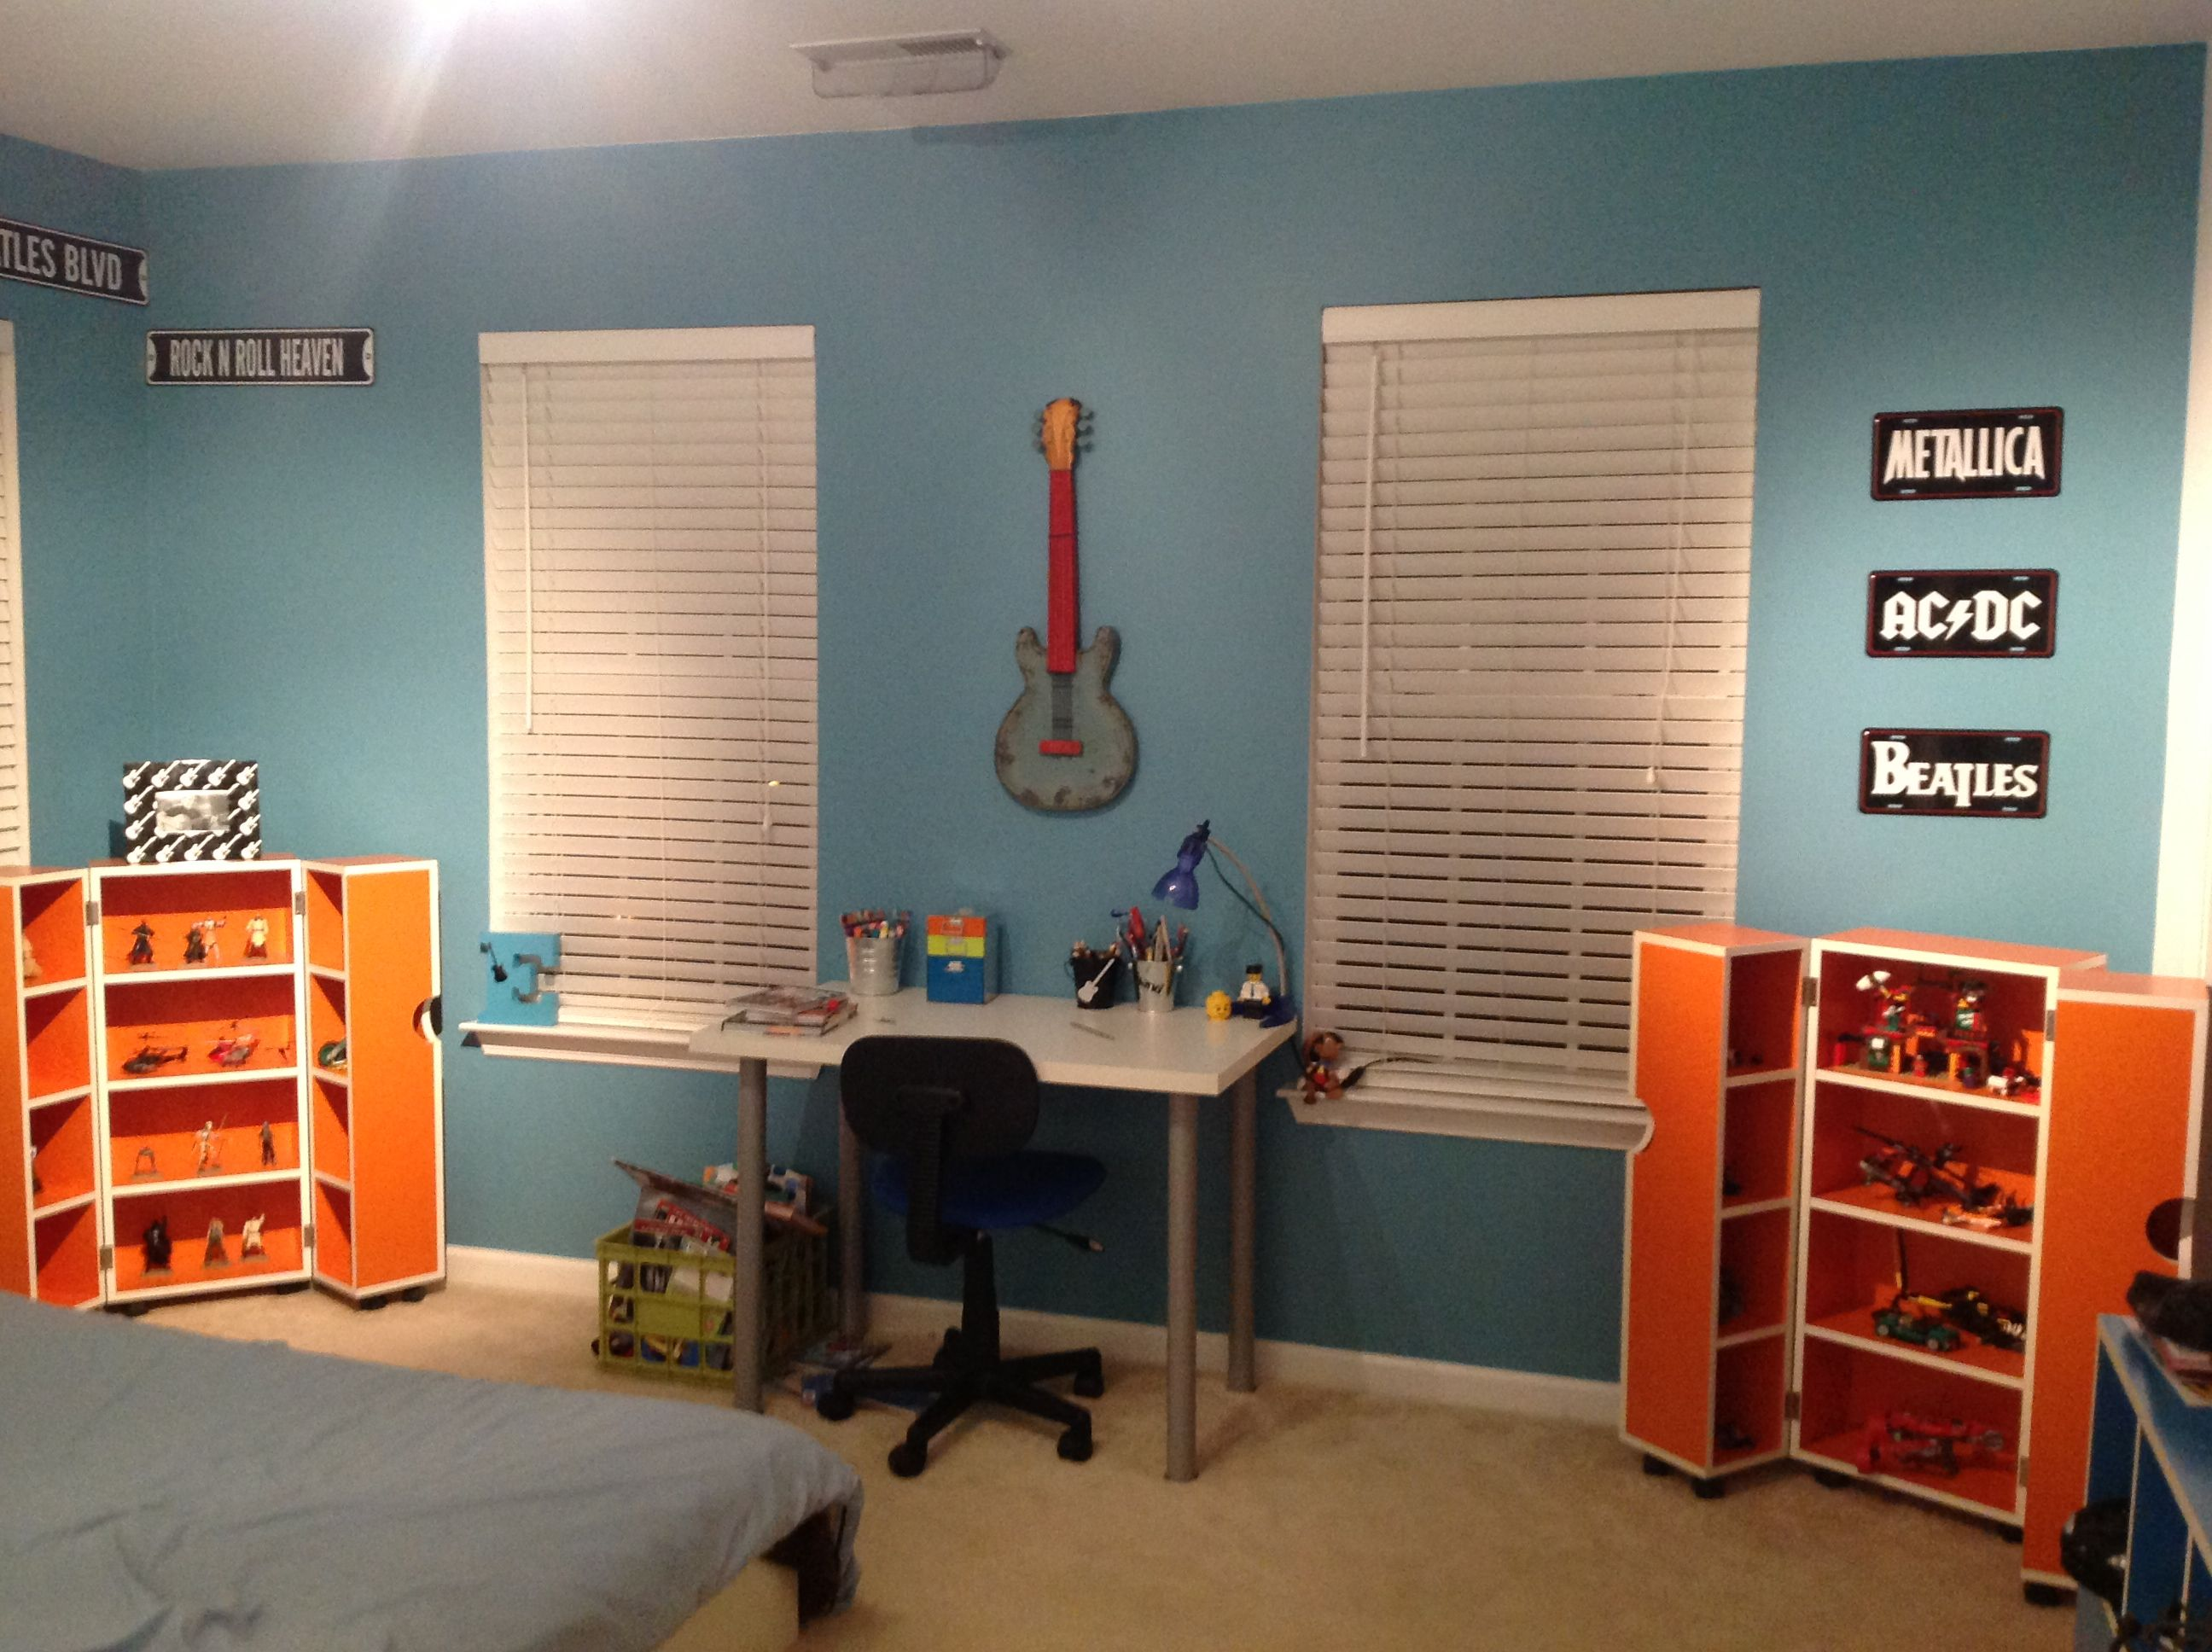 Guitar Decor For Bedroom Kid Bedroom Teenager Bedroom Music Theme Rock Star Guitar